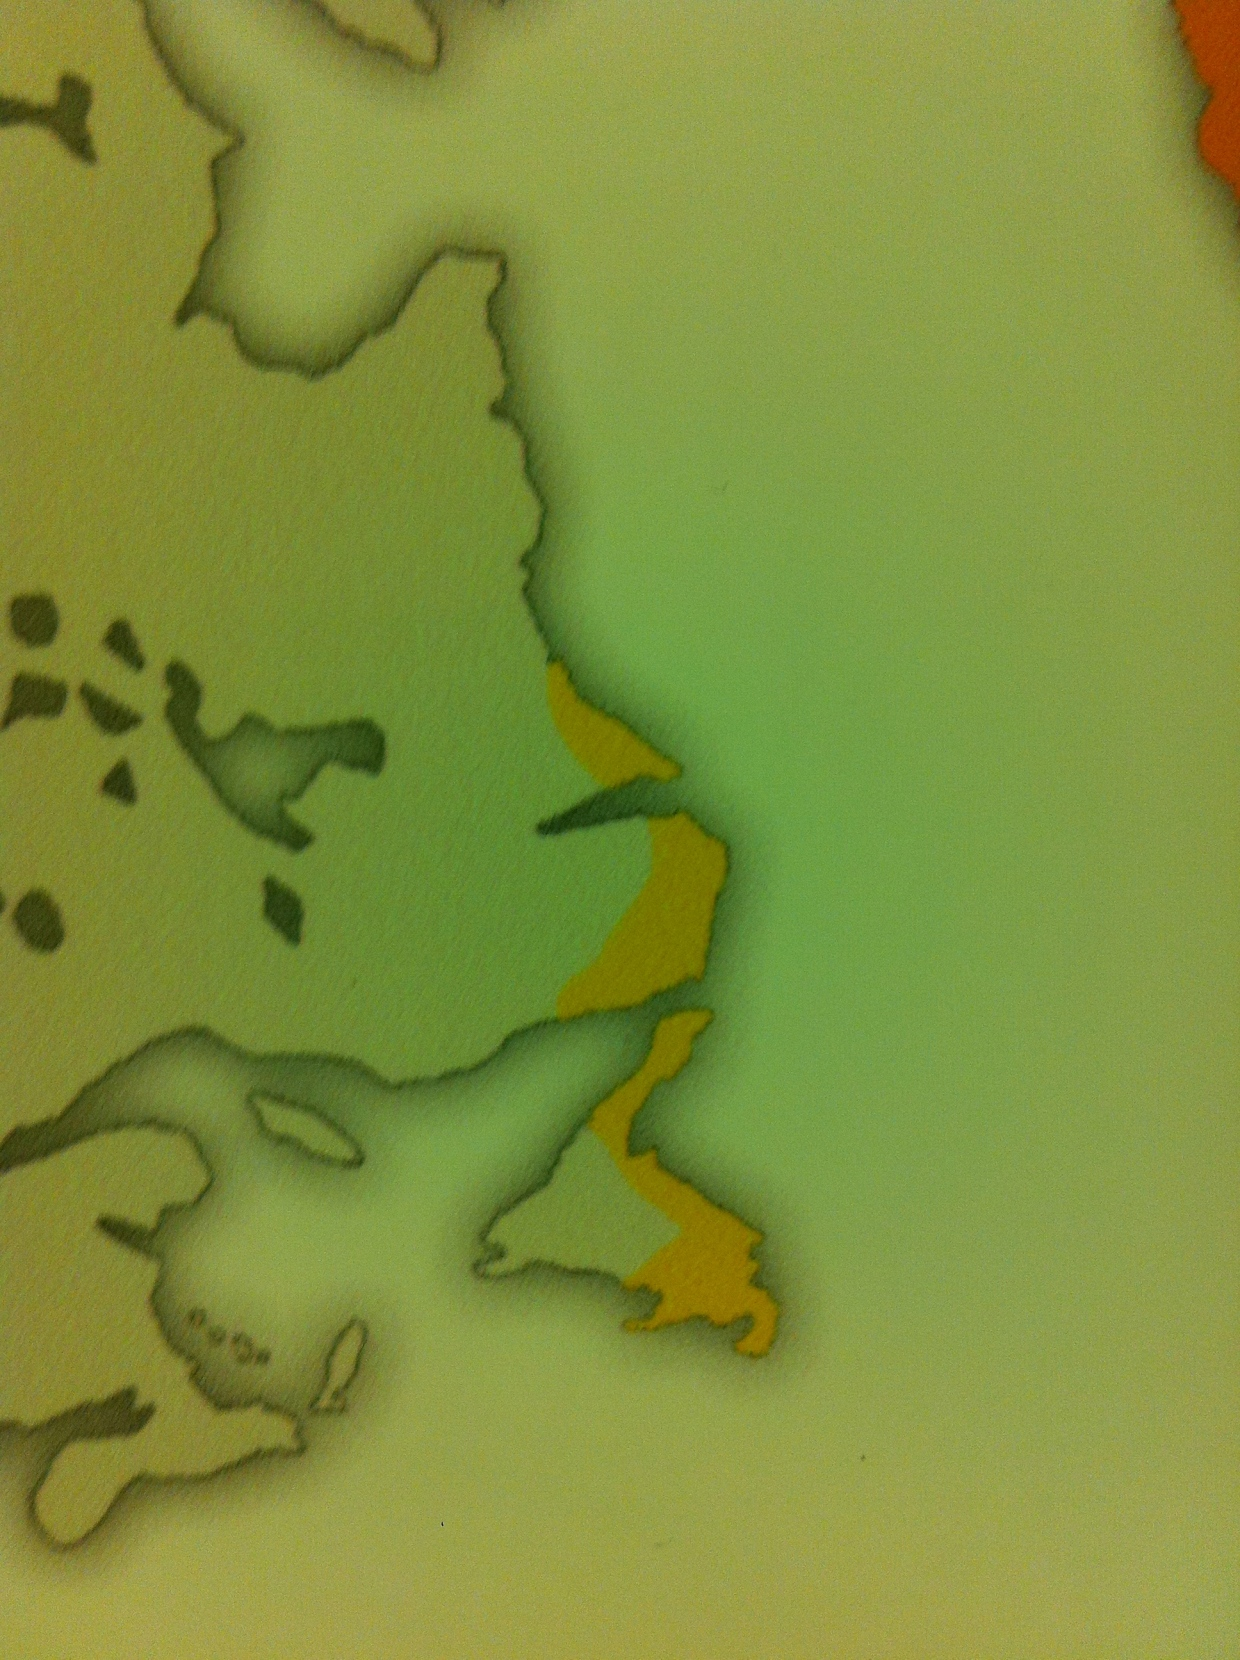 The only Viking-Canada connection is this small map detail showing where Vikings may have settled in Canada.